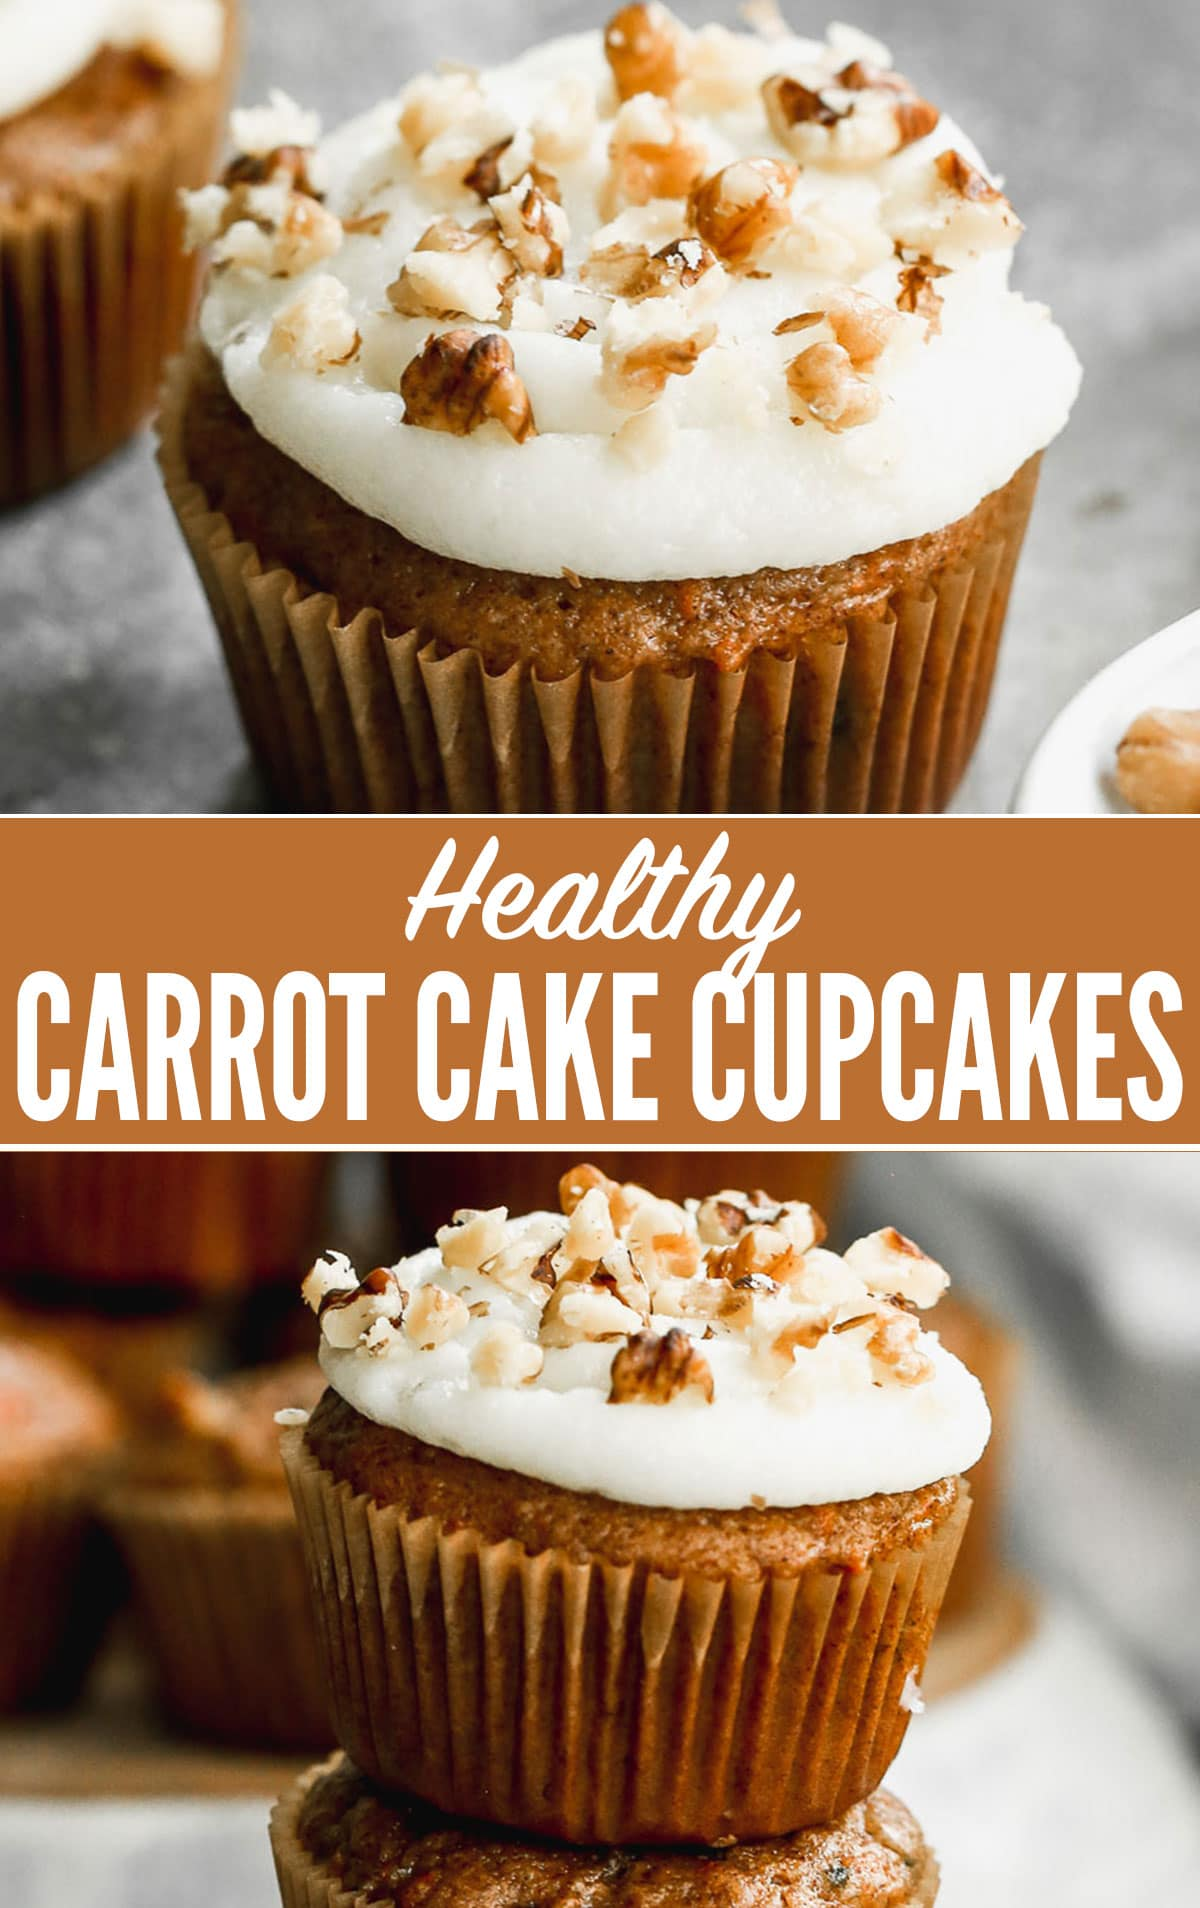 Best Healthy Carrot Cake Cupcakes Recipe